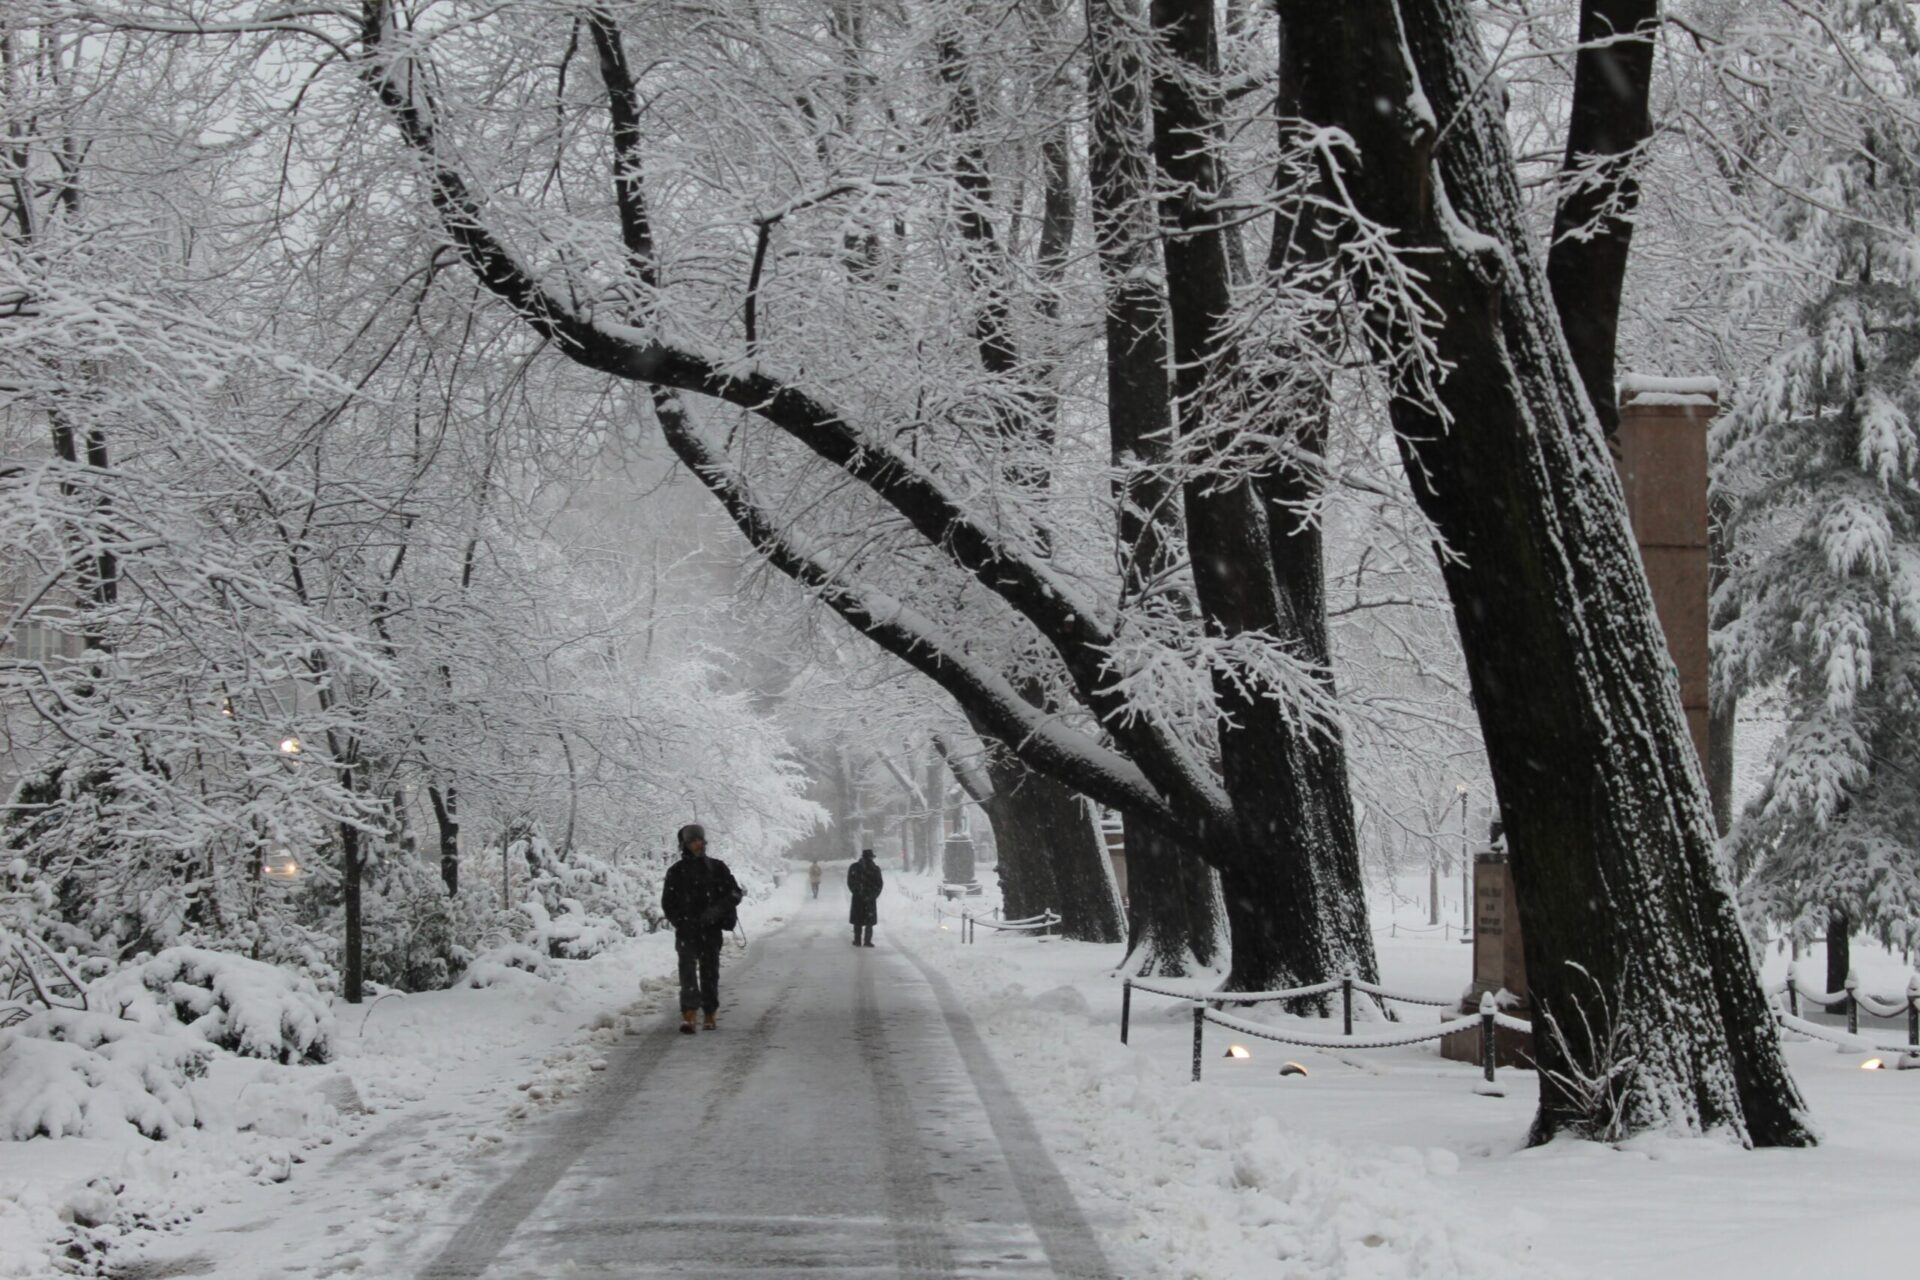 People walking along a path in the snow